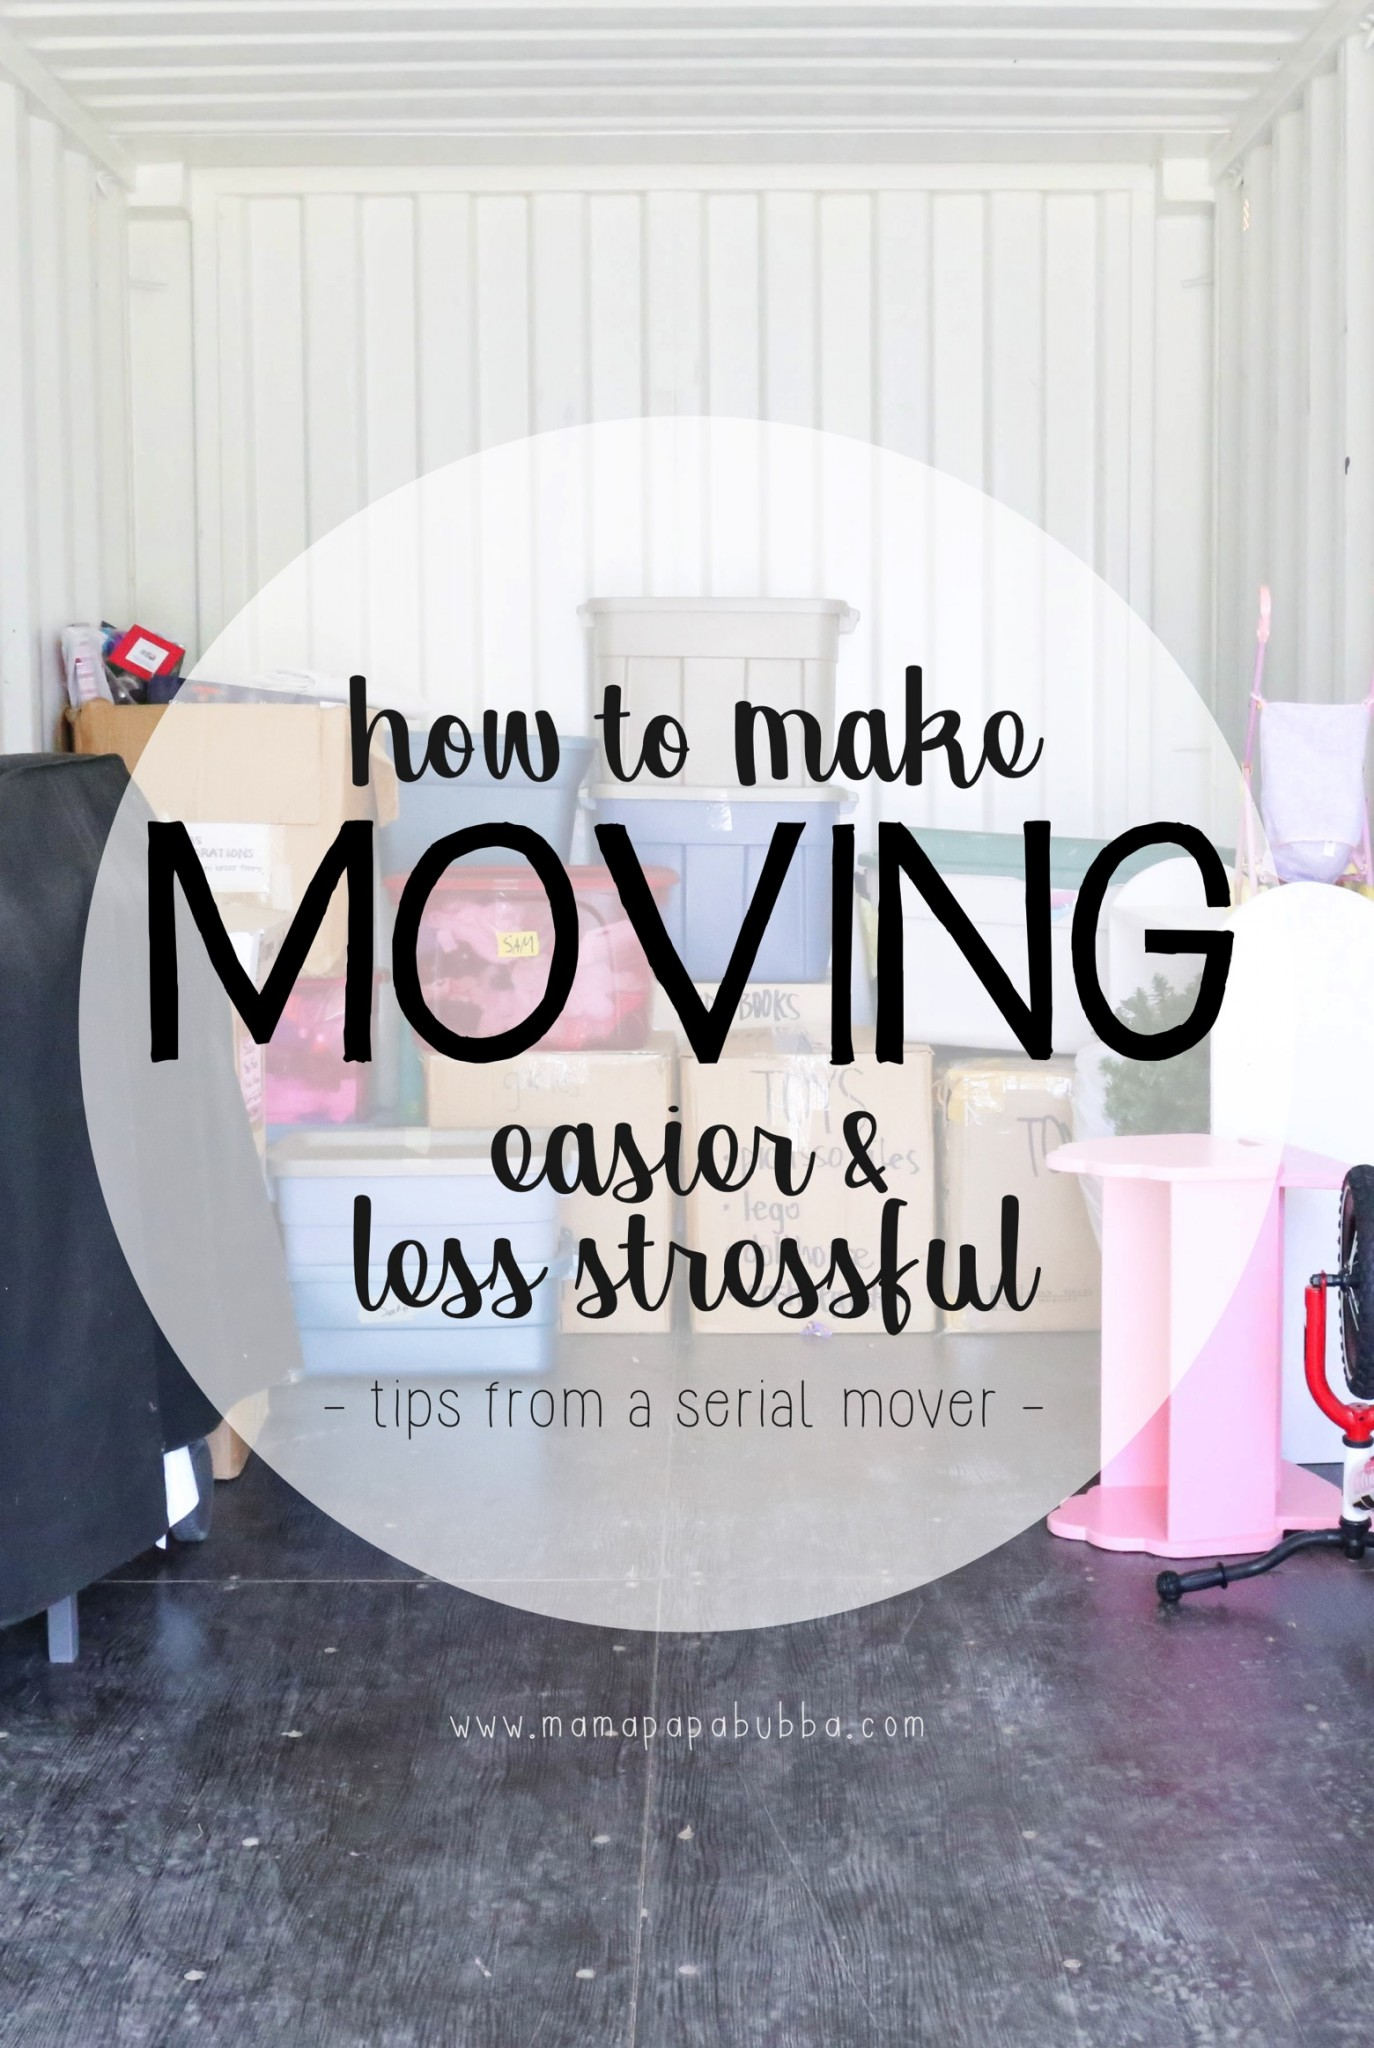 How to make Moving Easier and Less Stressful | Mama Papa Bubba